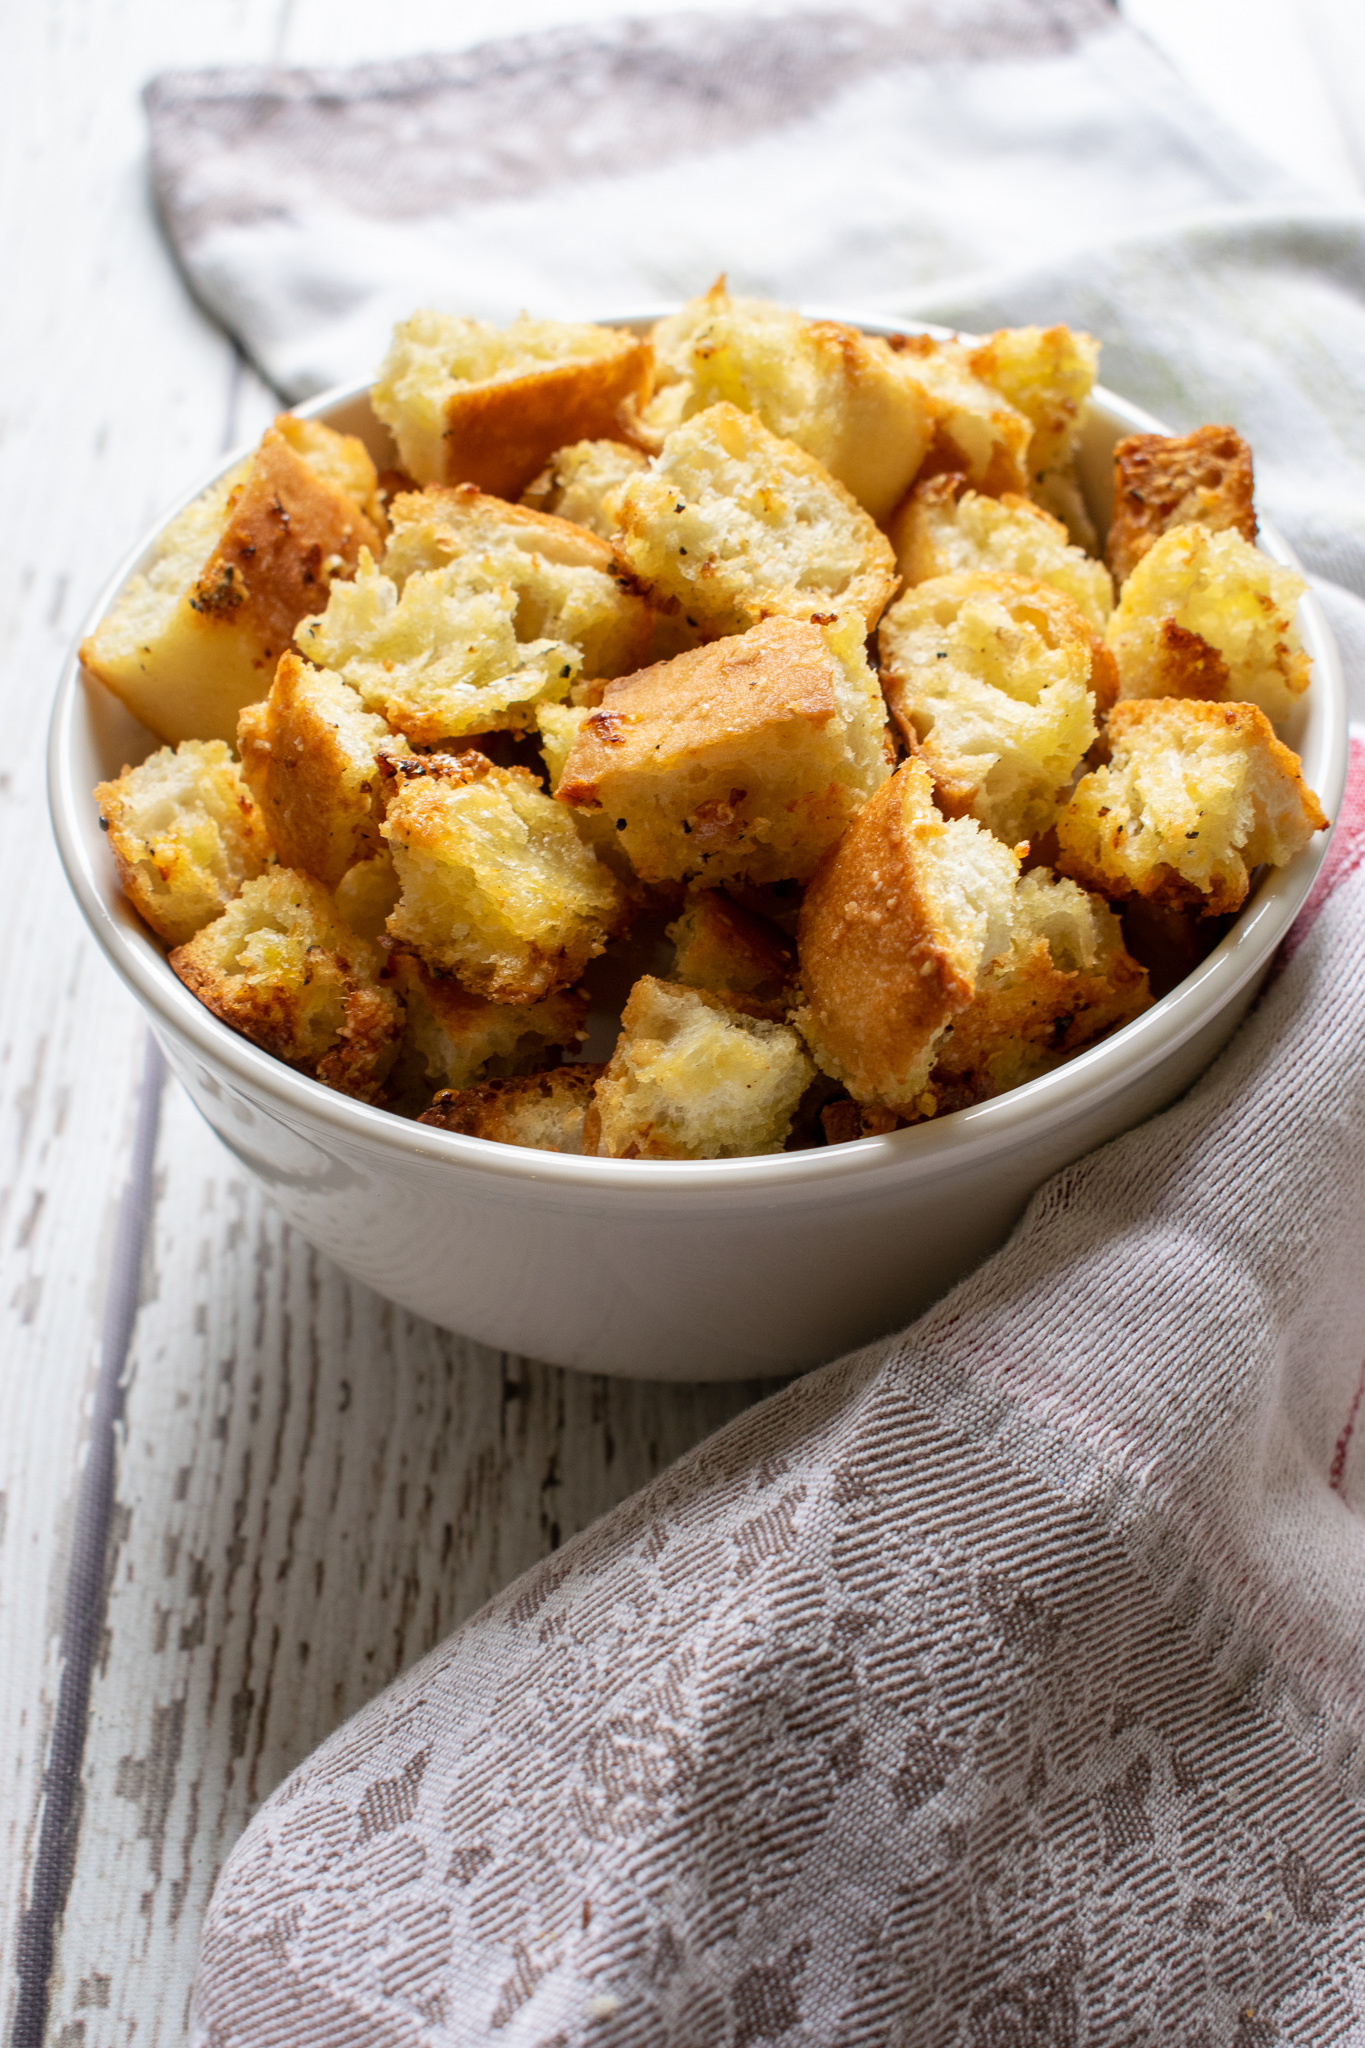 Parmesan and Garlic Croutons in a bowl next to a linen towel.